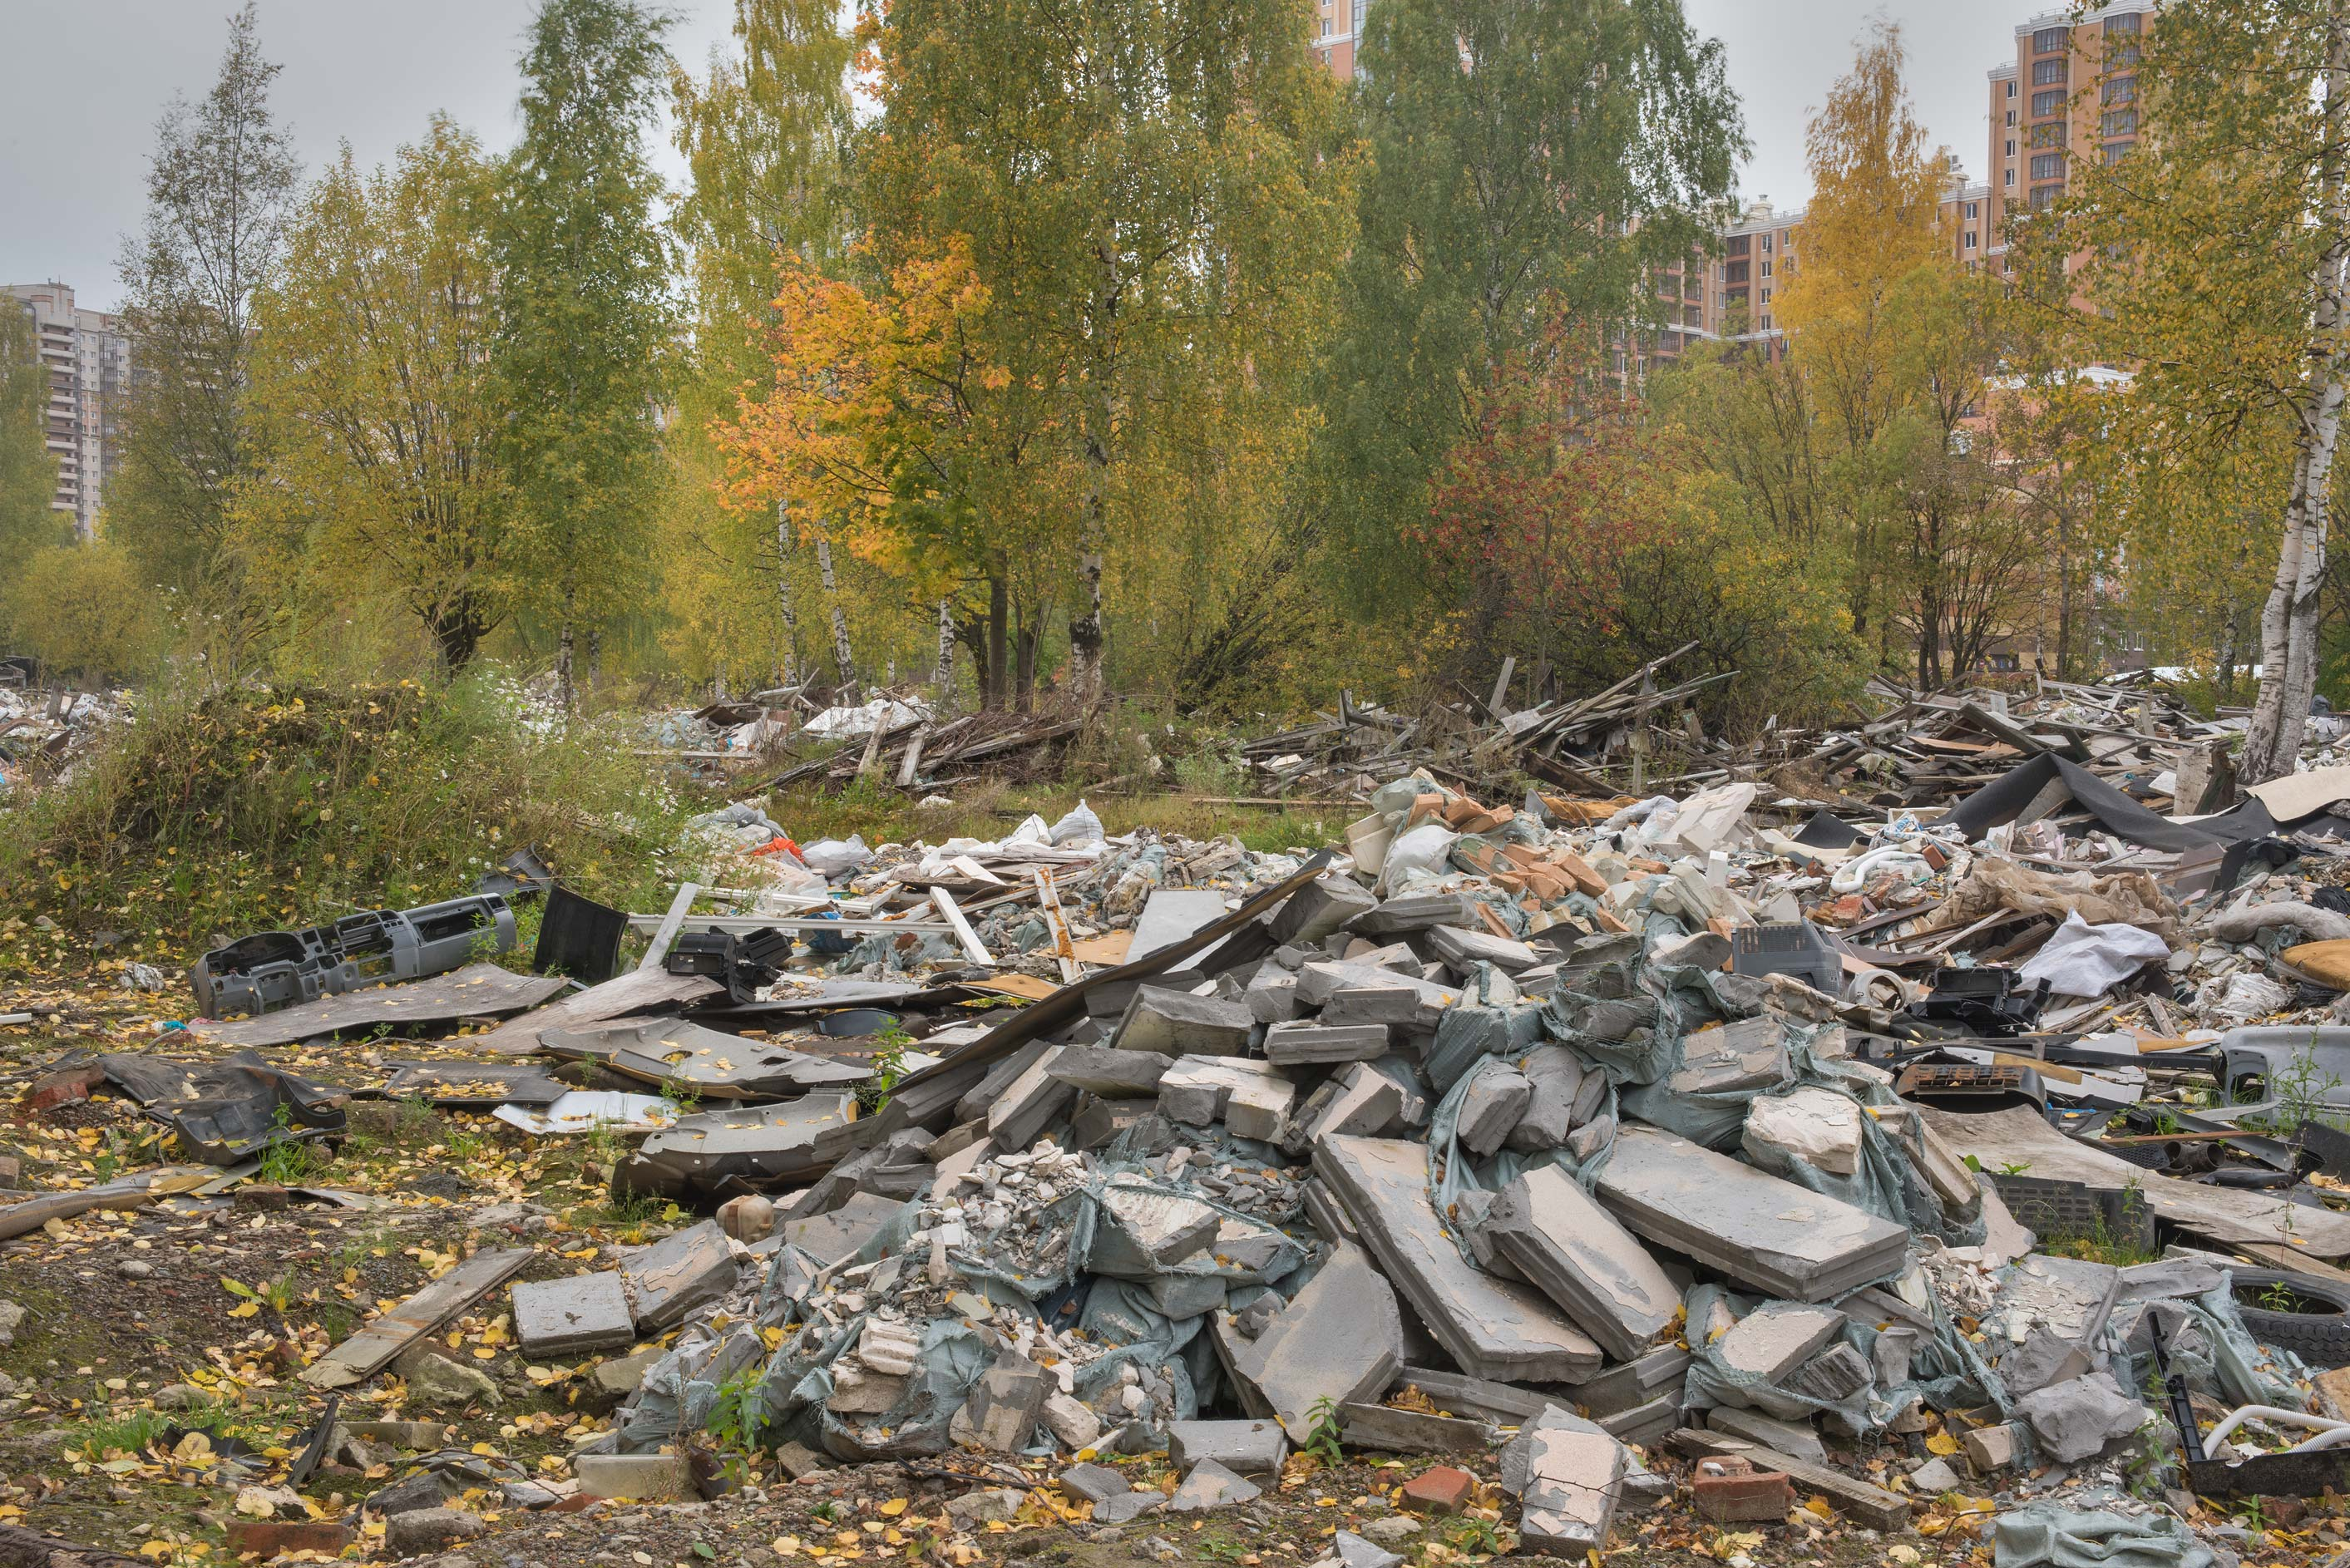 Rubble in area of former German camps in Sosnovka Park. St.Petersburg, Russia